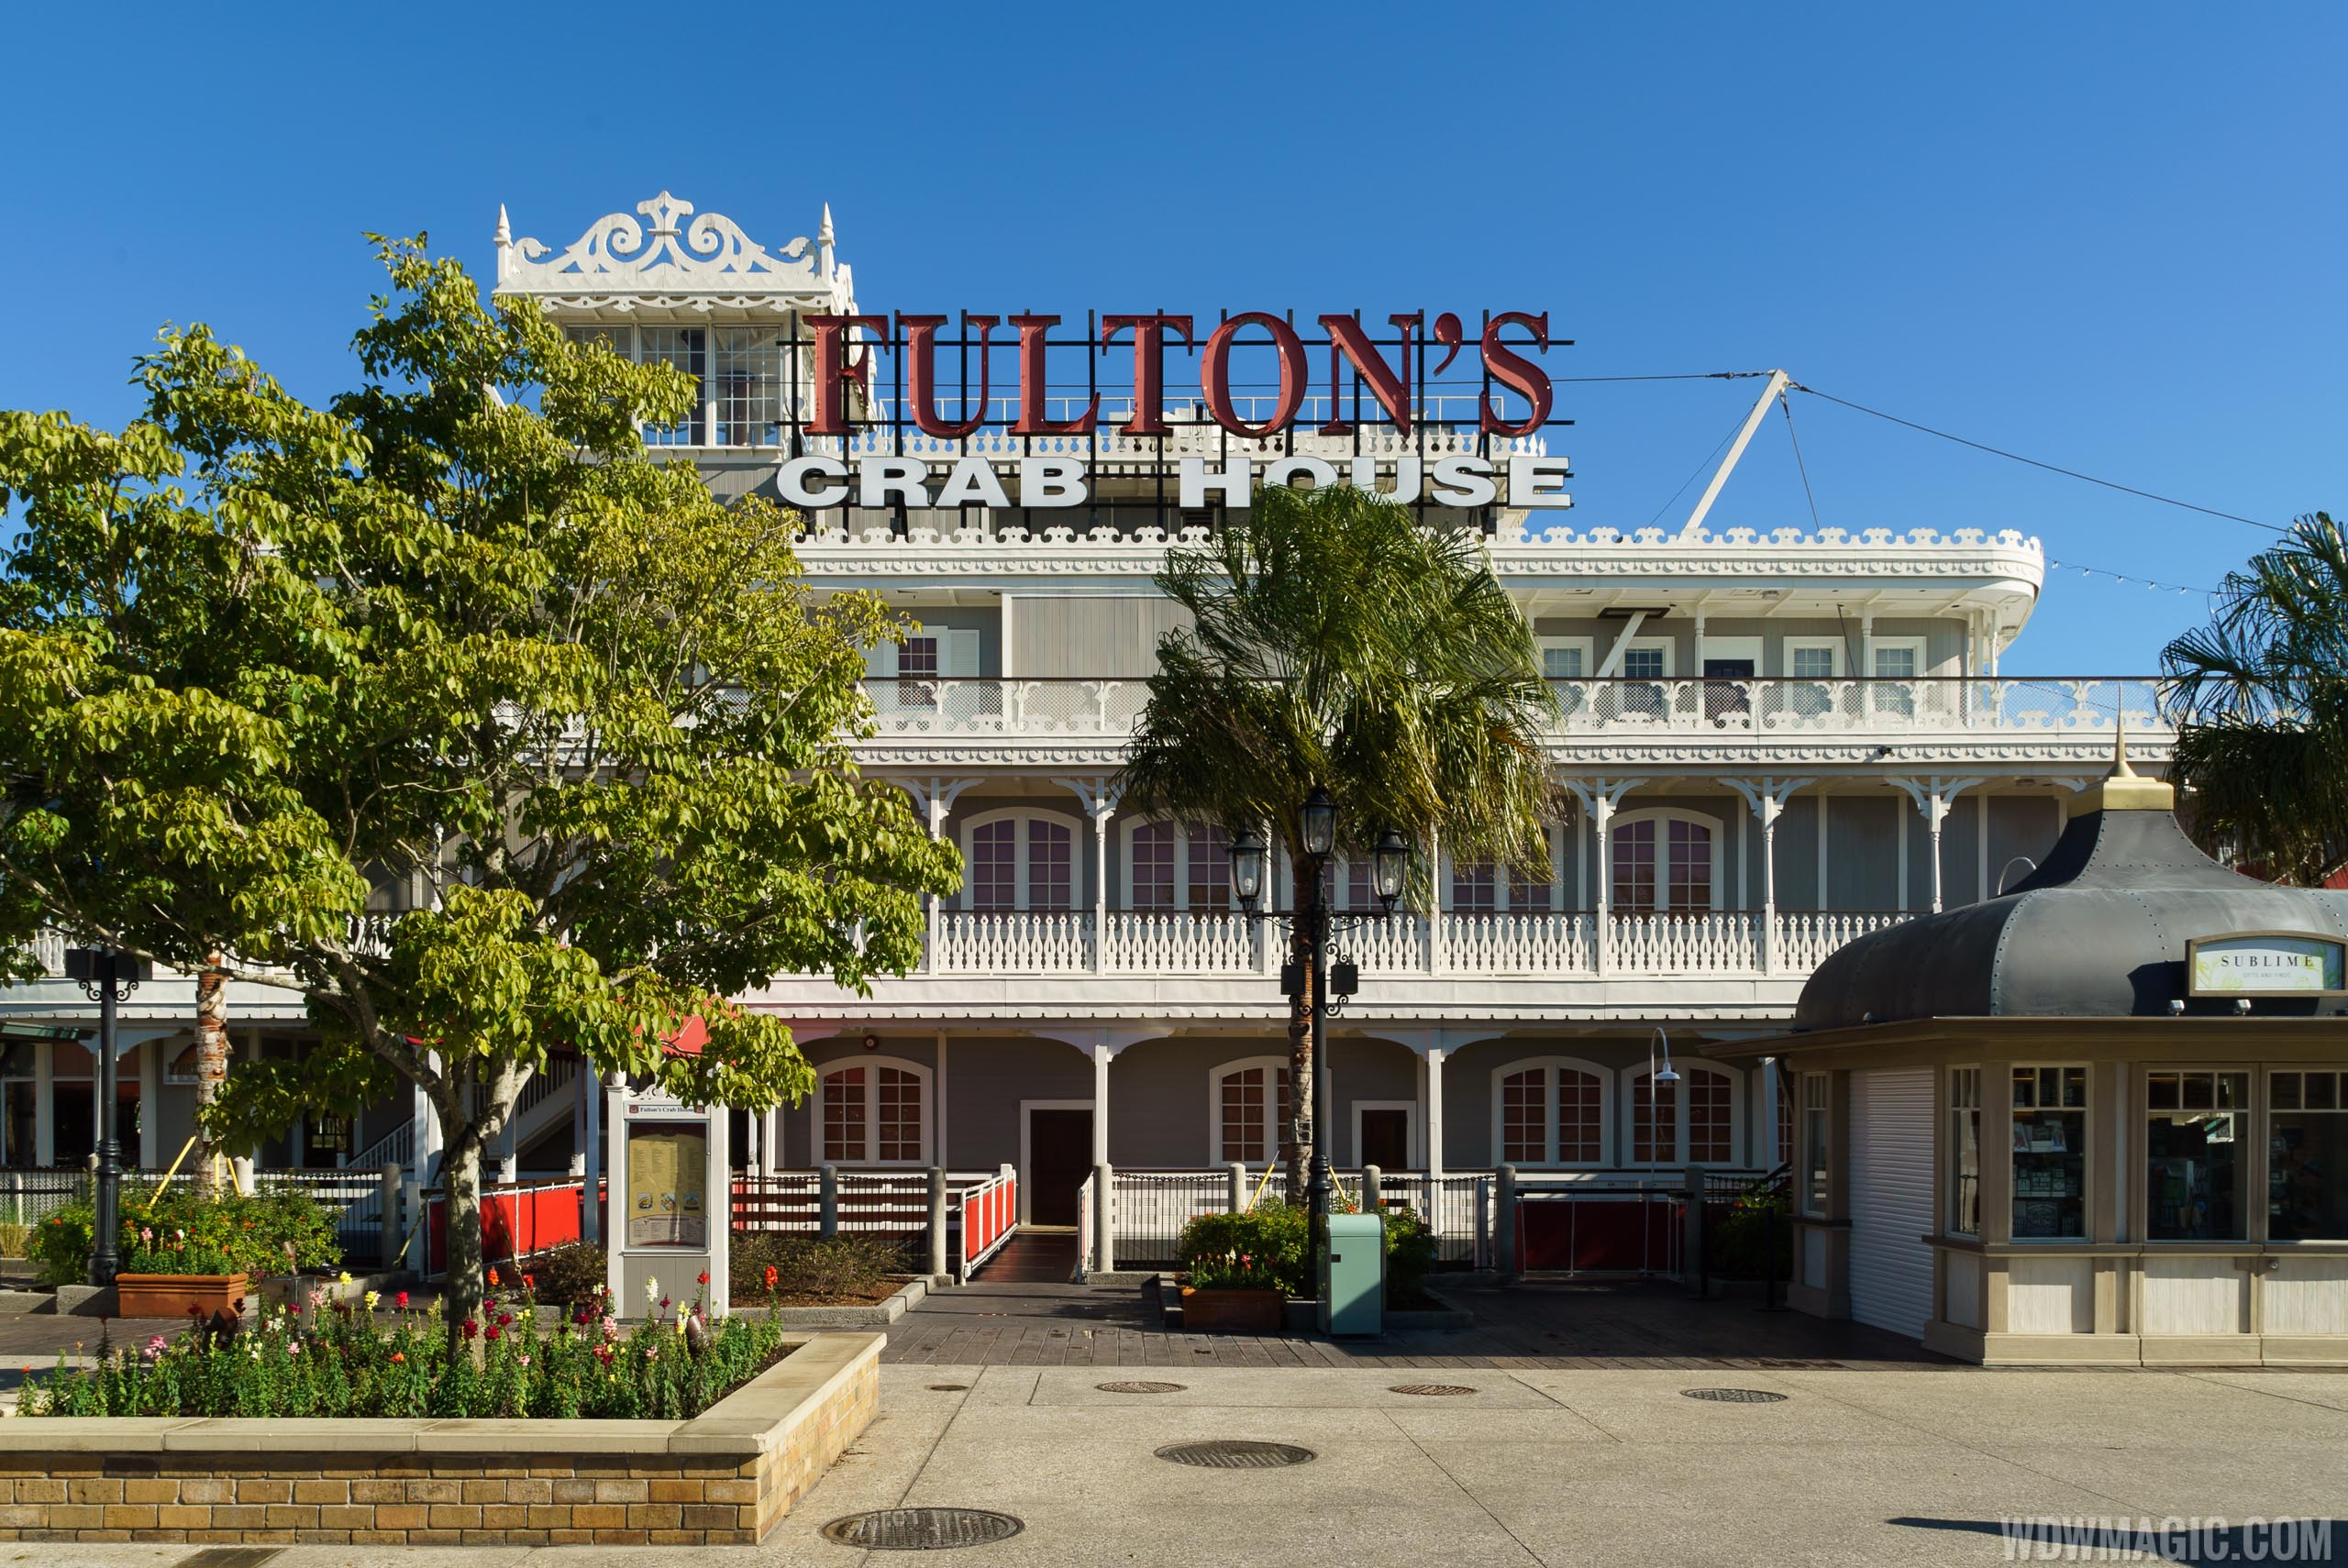 Fulton's Crab House overview